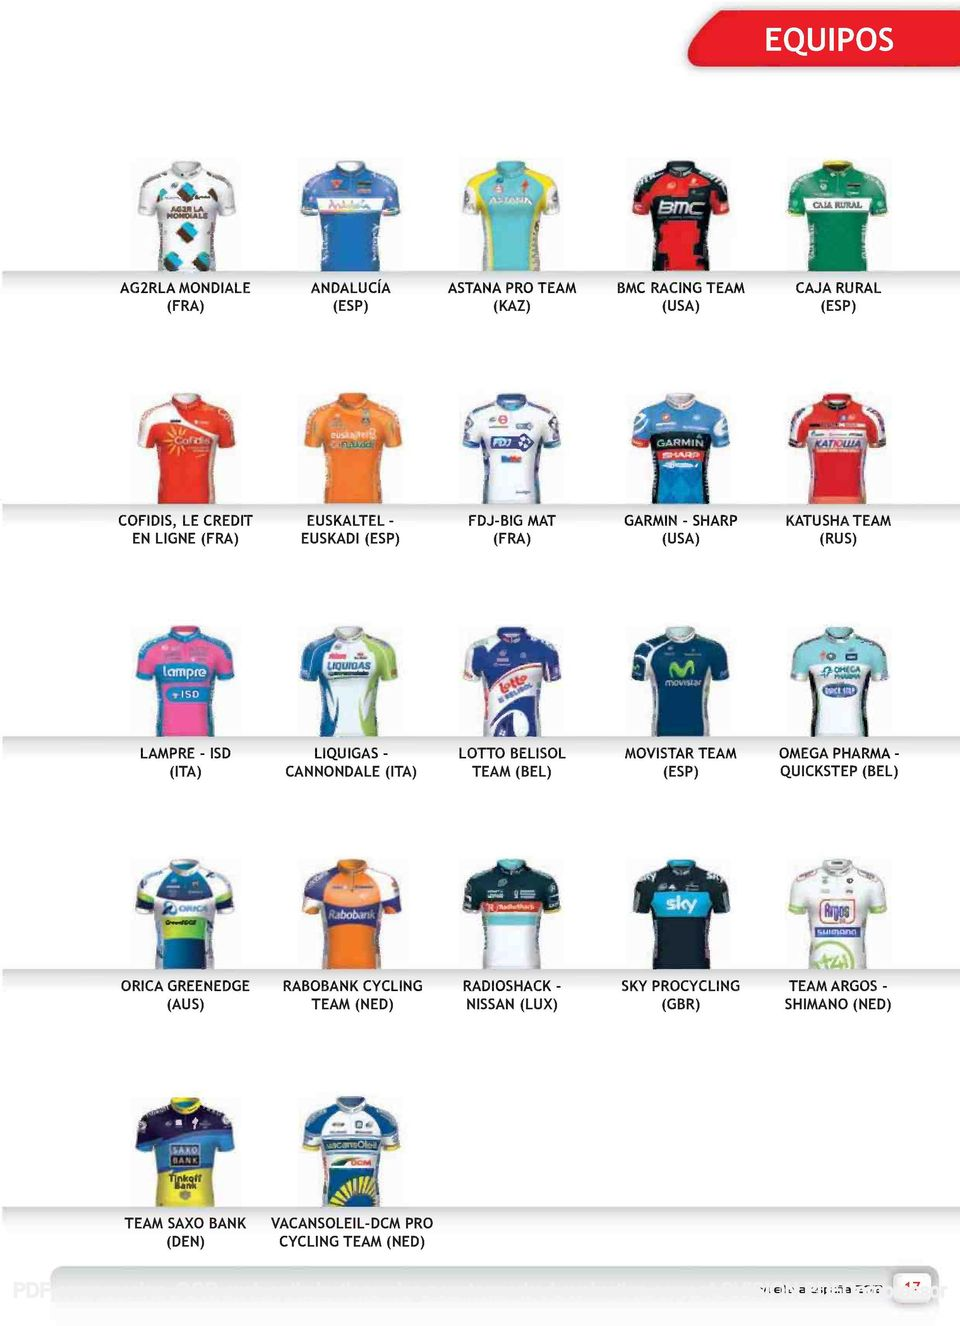 BELISOL TEAM (BEL) MOVISTAR TEAM OMEGA PHARMA - (ESP) QUICKSTEP (BEL) be kr ir~g7 met...9 1177.